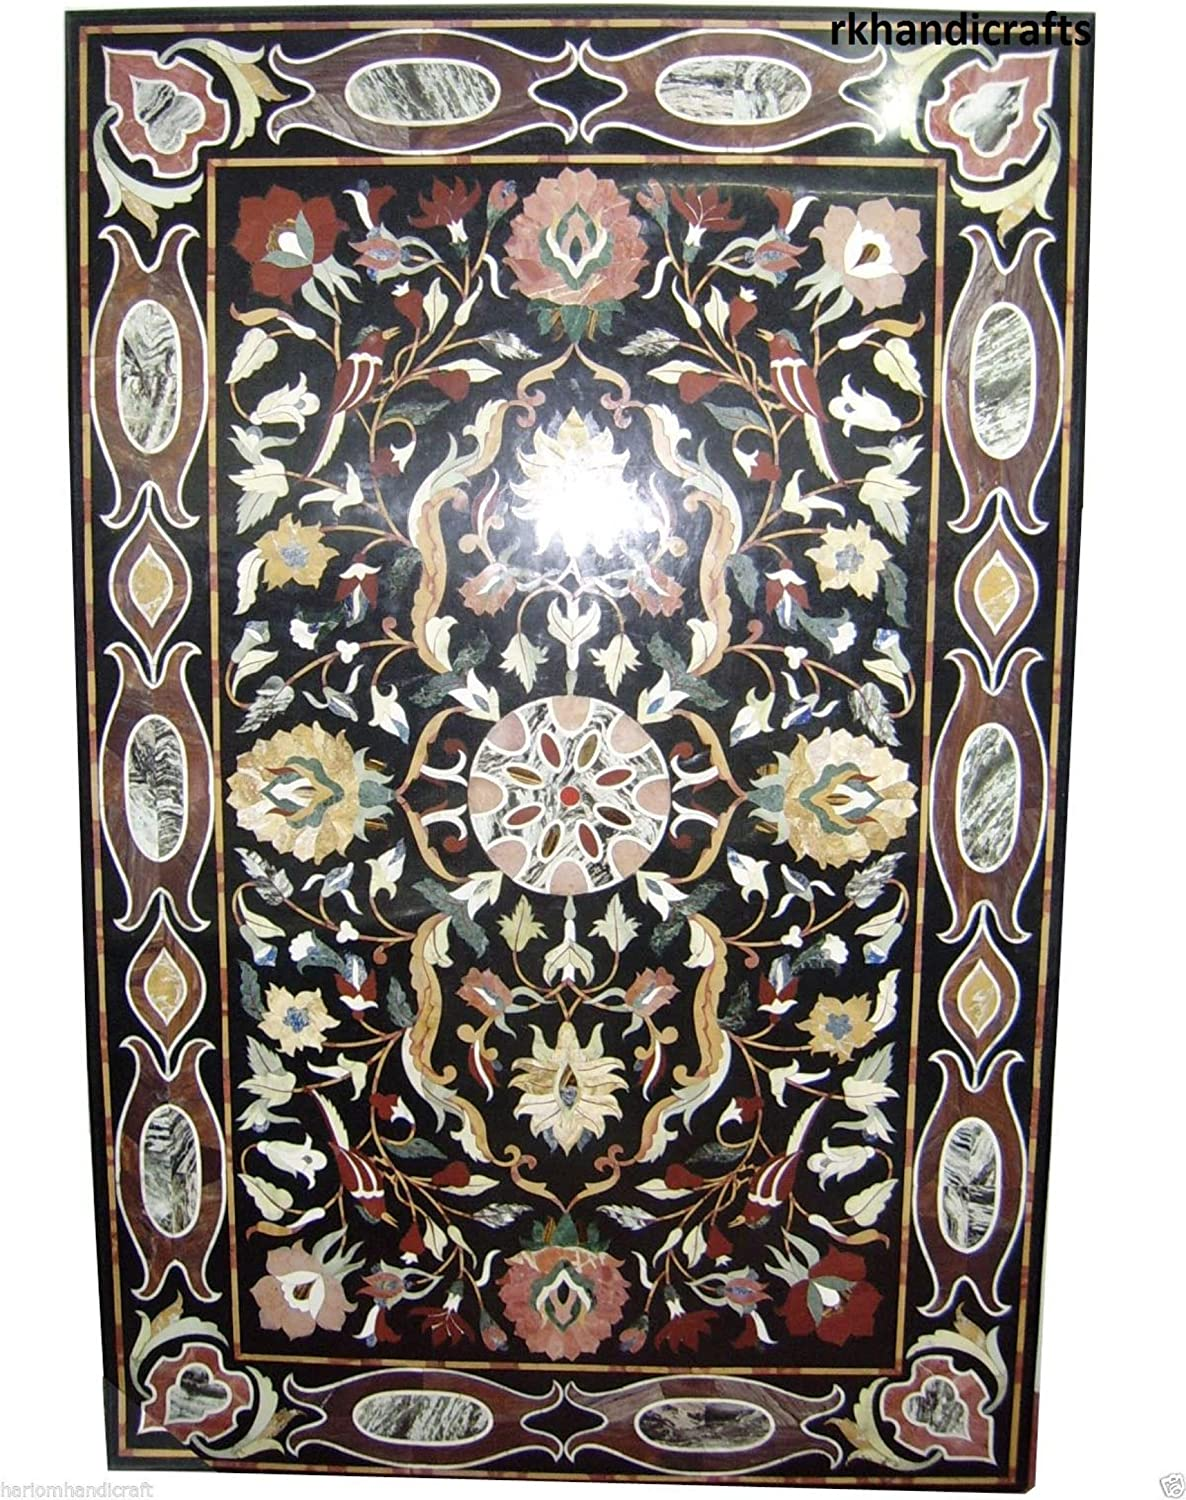 48 Inches x 72 Inches Black Marble Patio Dining Table Top at Center & Border Flower Inlaid Work, Elegant Look Home Furniture 81B3L1swapLSL1500_